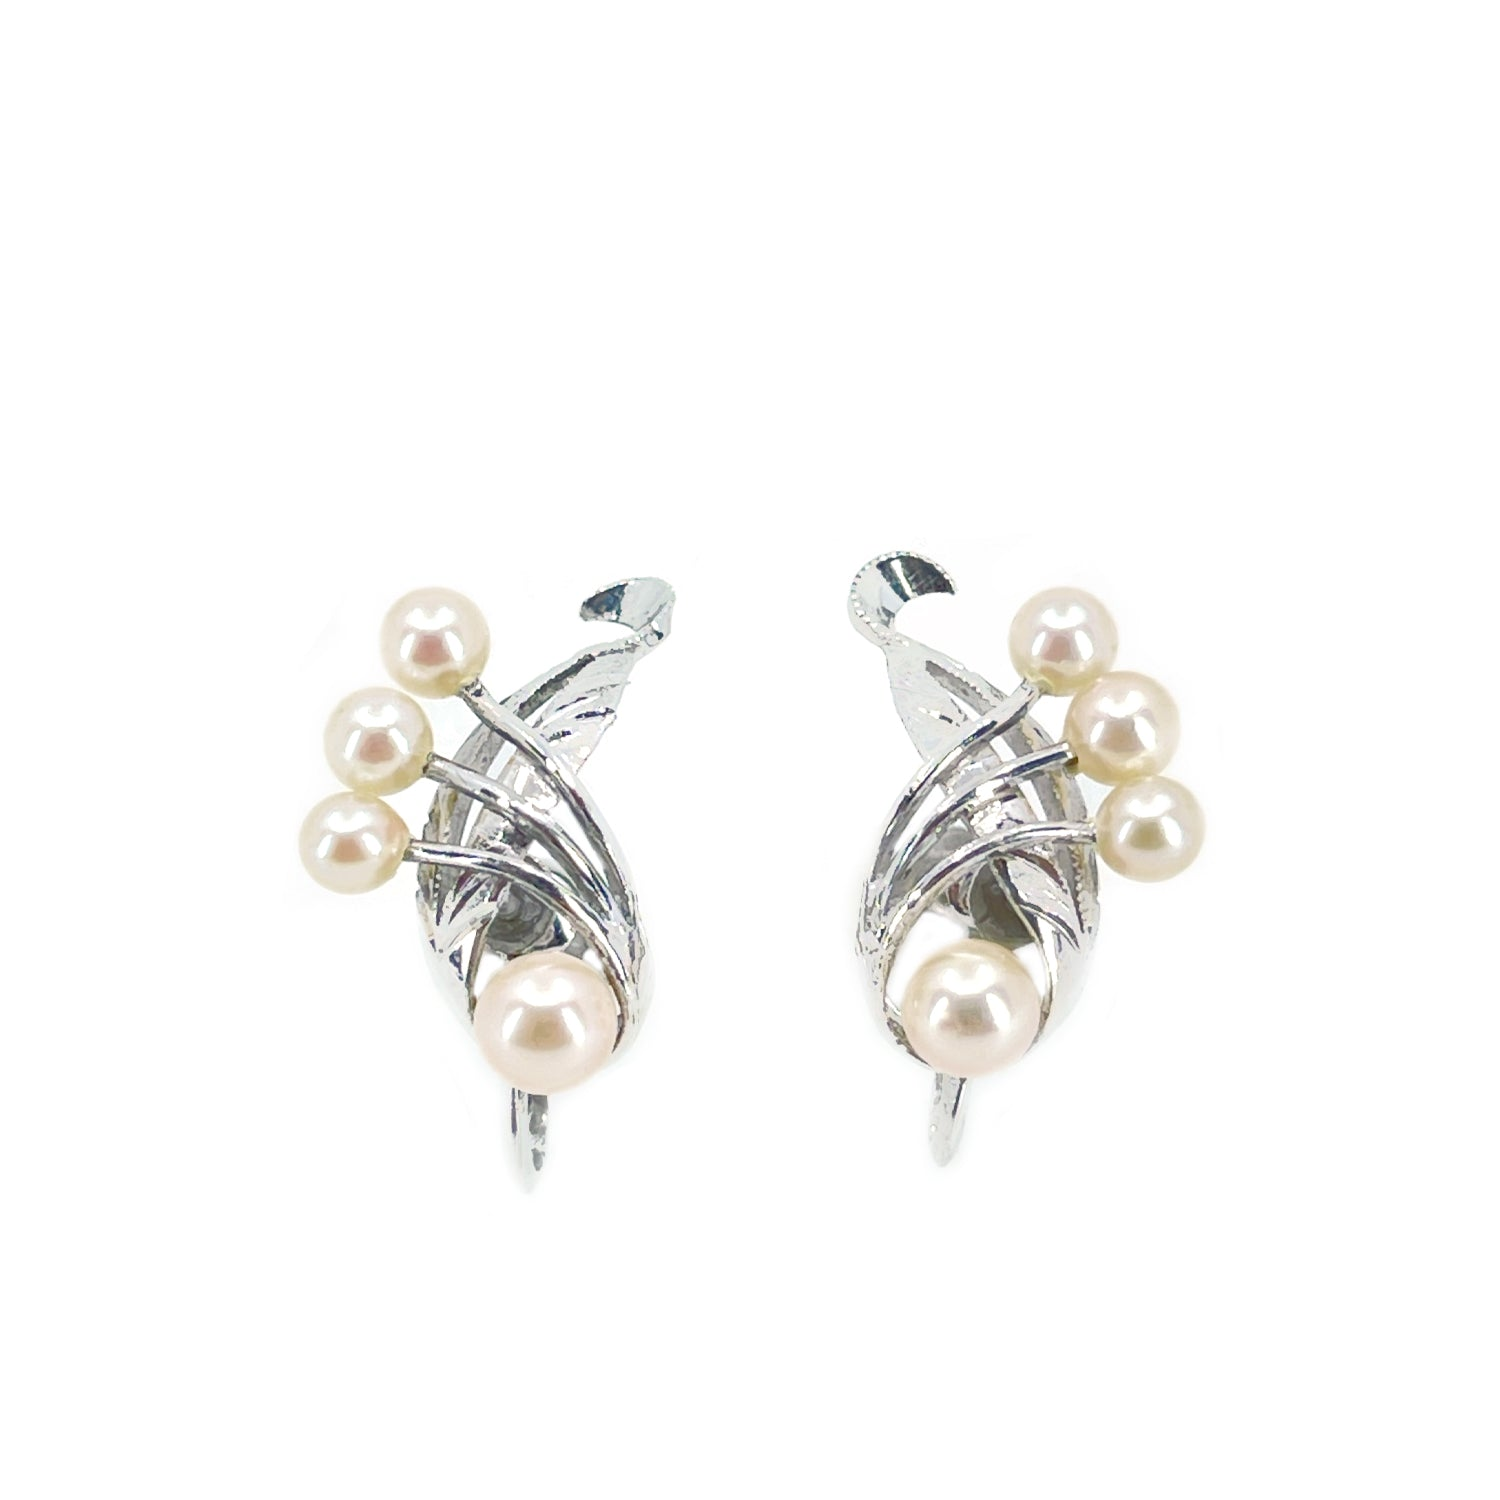 Engraved Nouveau Akoya Saltwater Cultured Pearl Spray Screwback Earrings- Sterling Silver